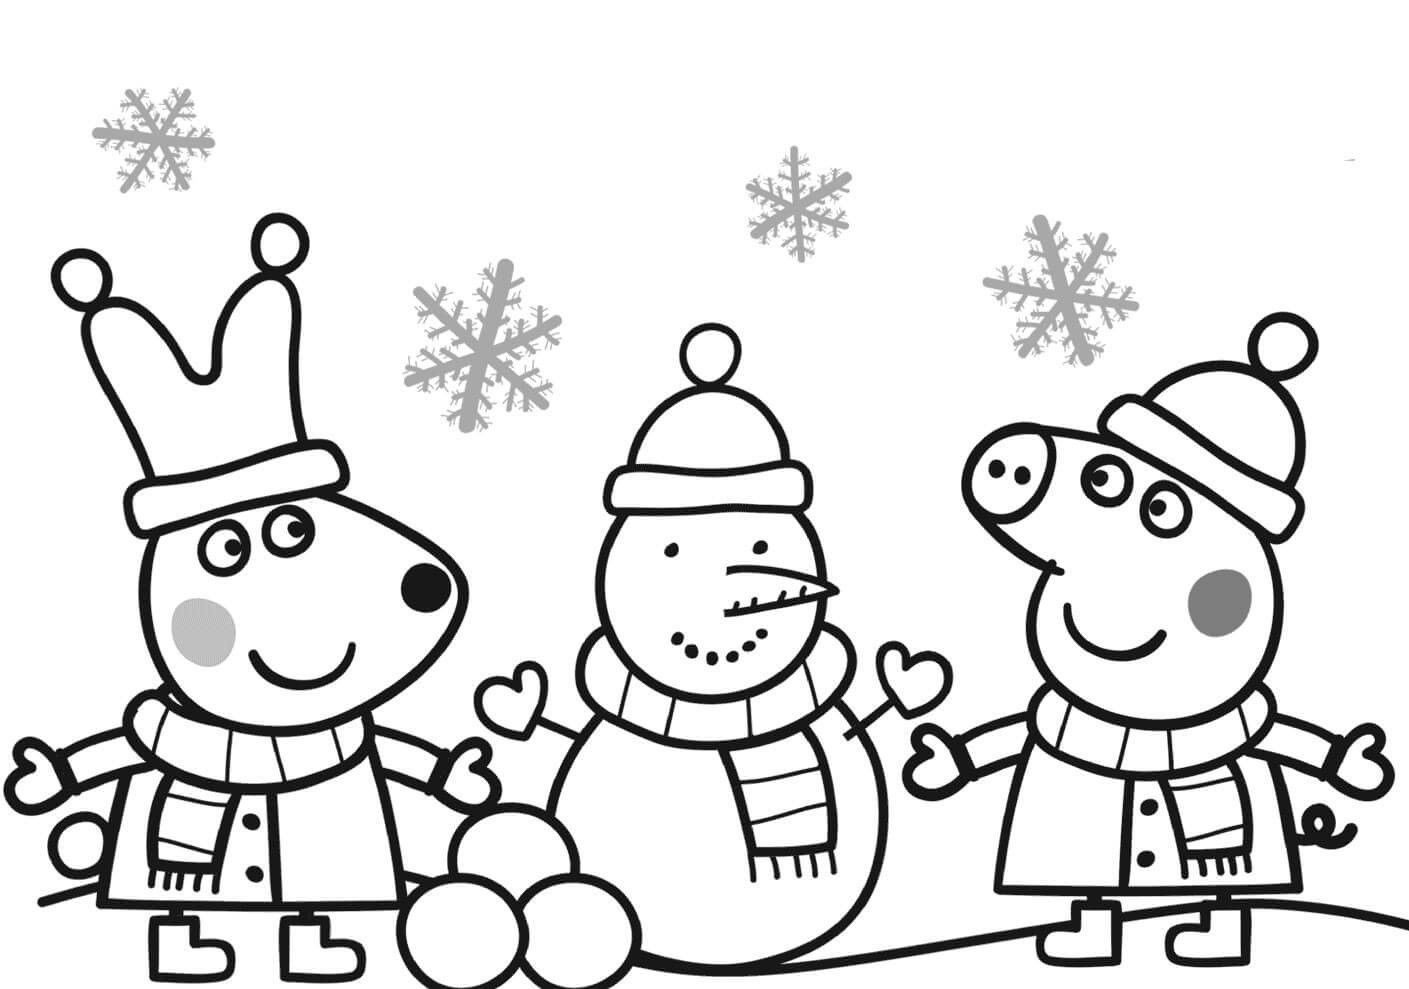 Peppa Pig Coloring Pages Christmas From The Thousand Images On The Web About Peppa Pig Color Peppa Pig Coloring Pages Peppa Pig Colouring Peppa Pig Christmas